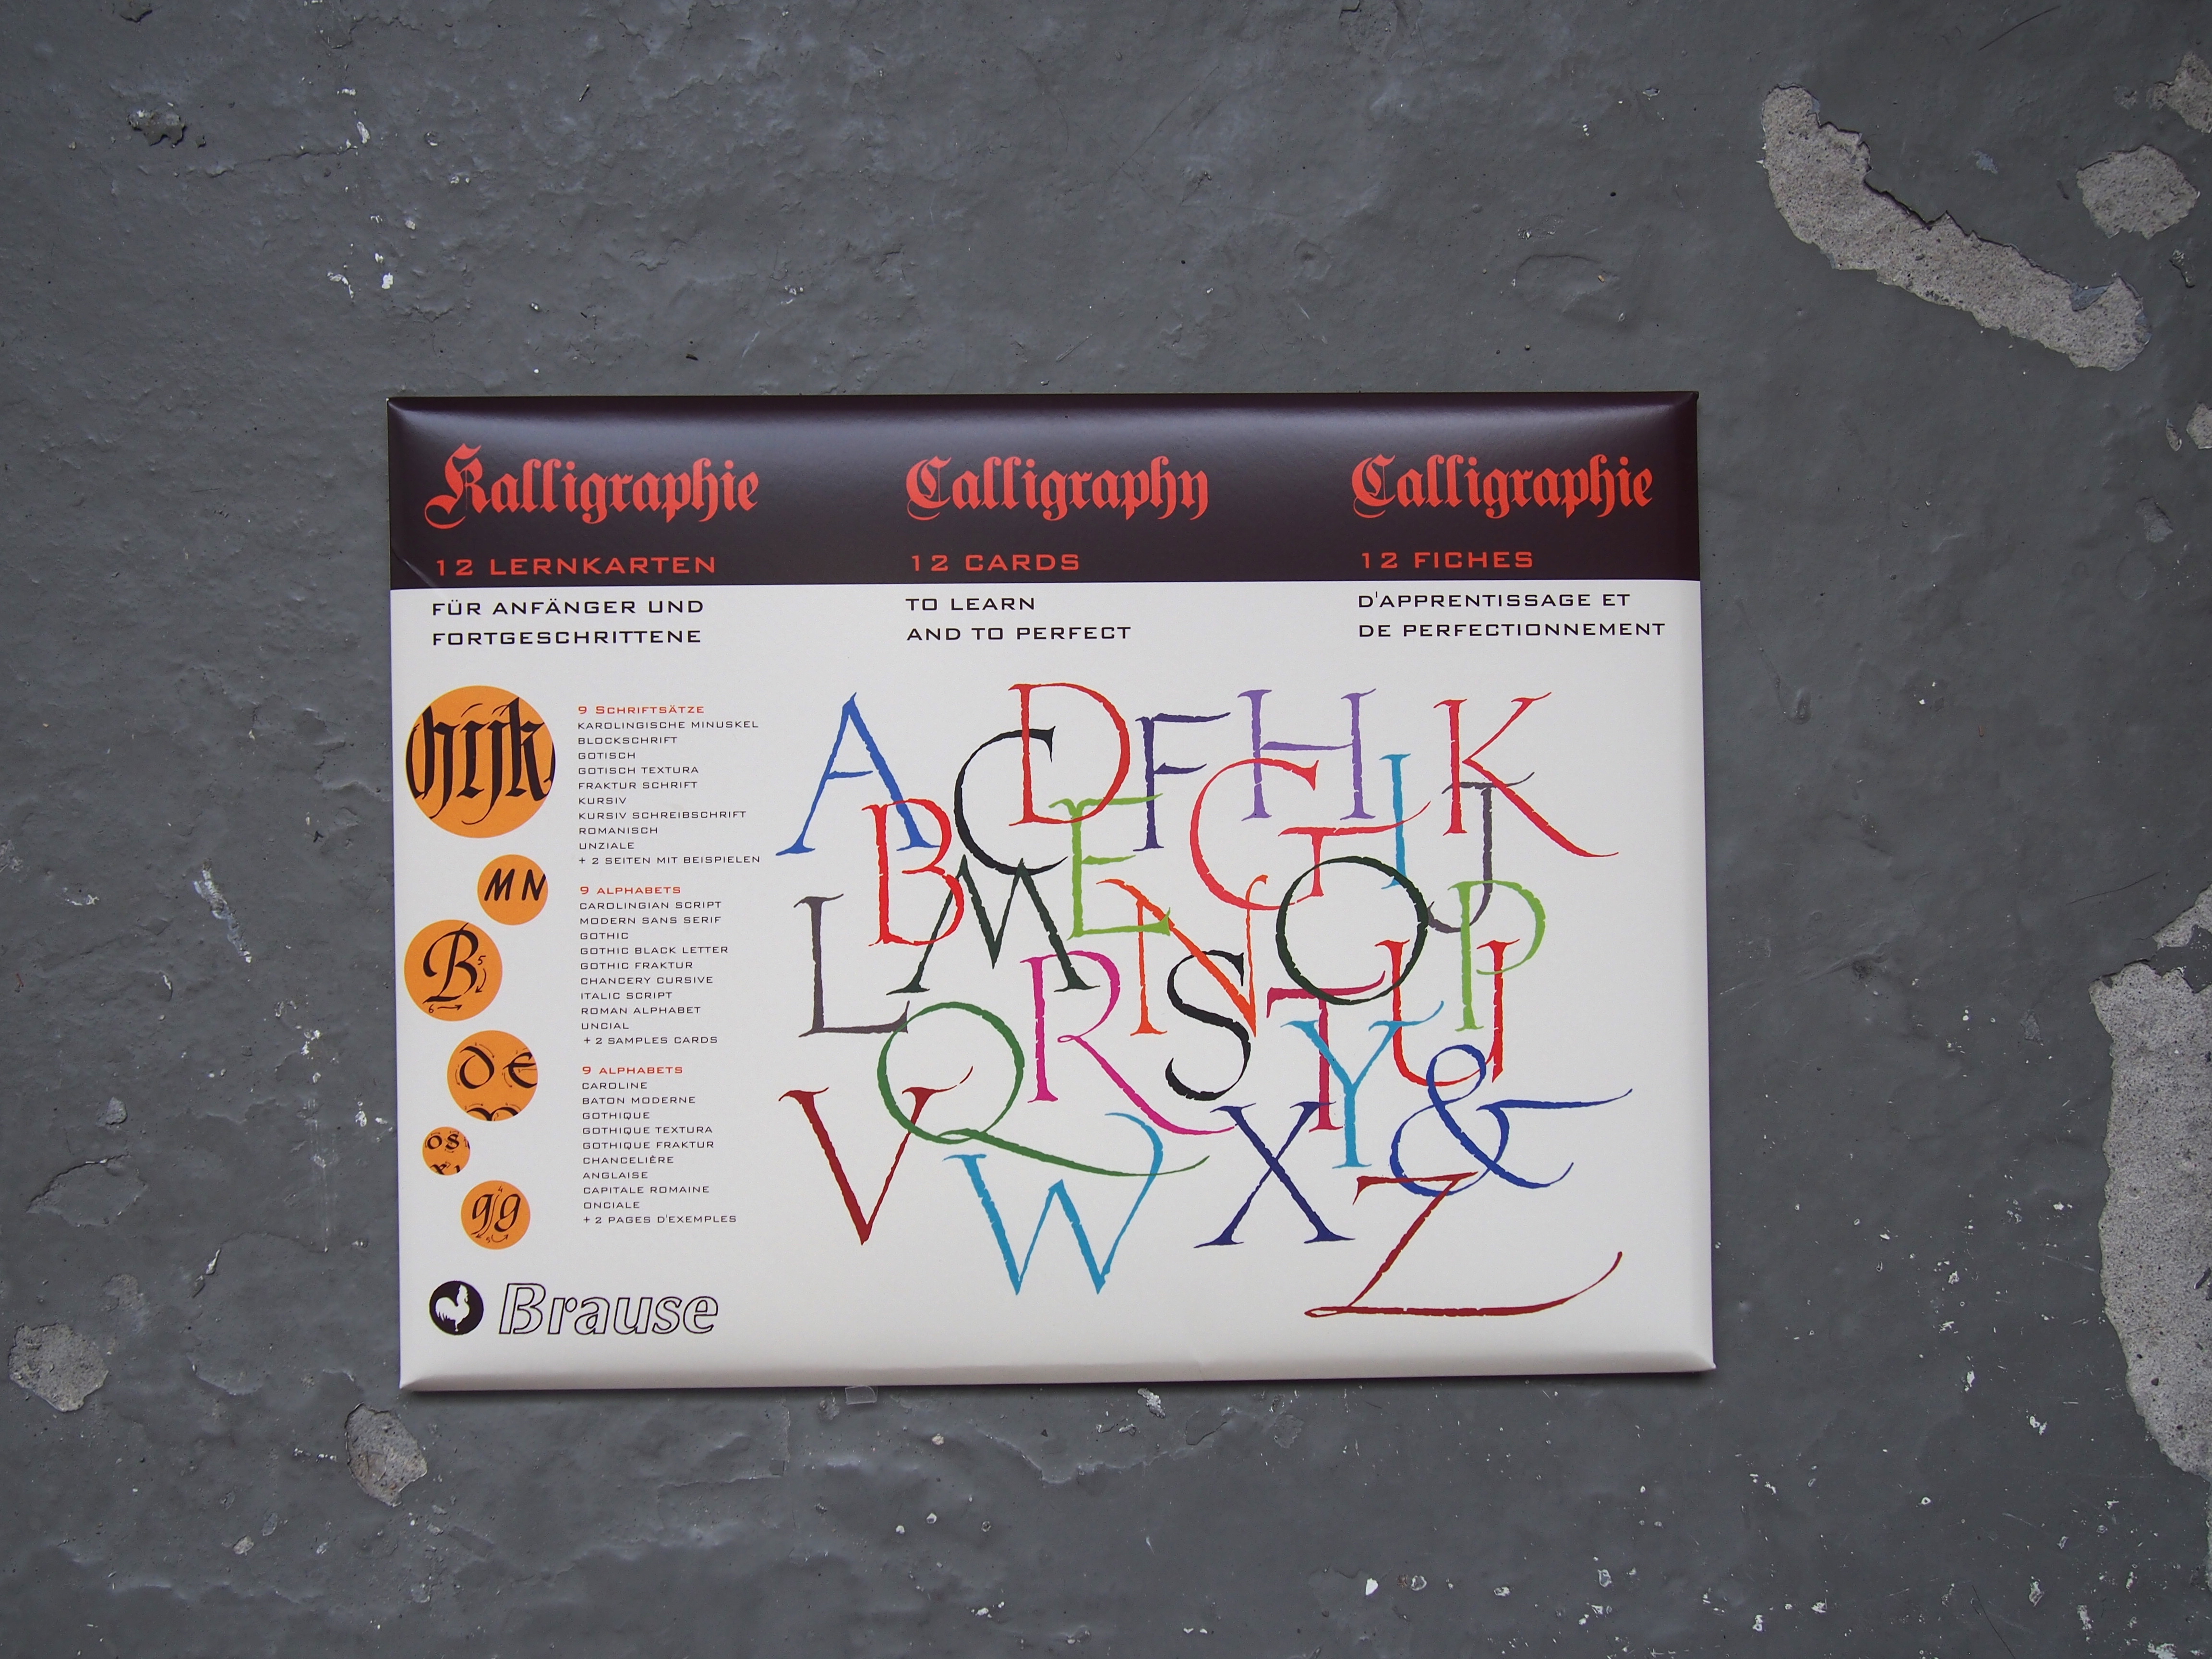 Learn Calligraphy Templates Instruction Guide Toronto Canada Wonder Pens wonderpens.ca